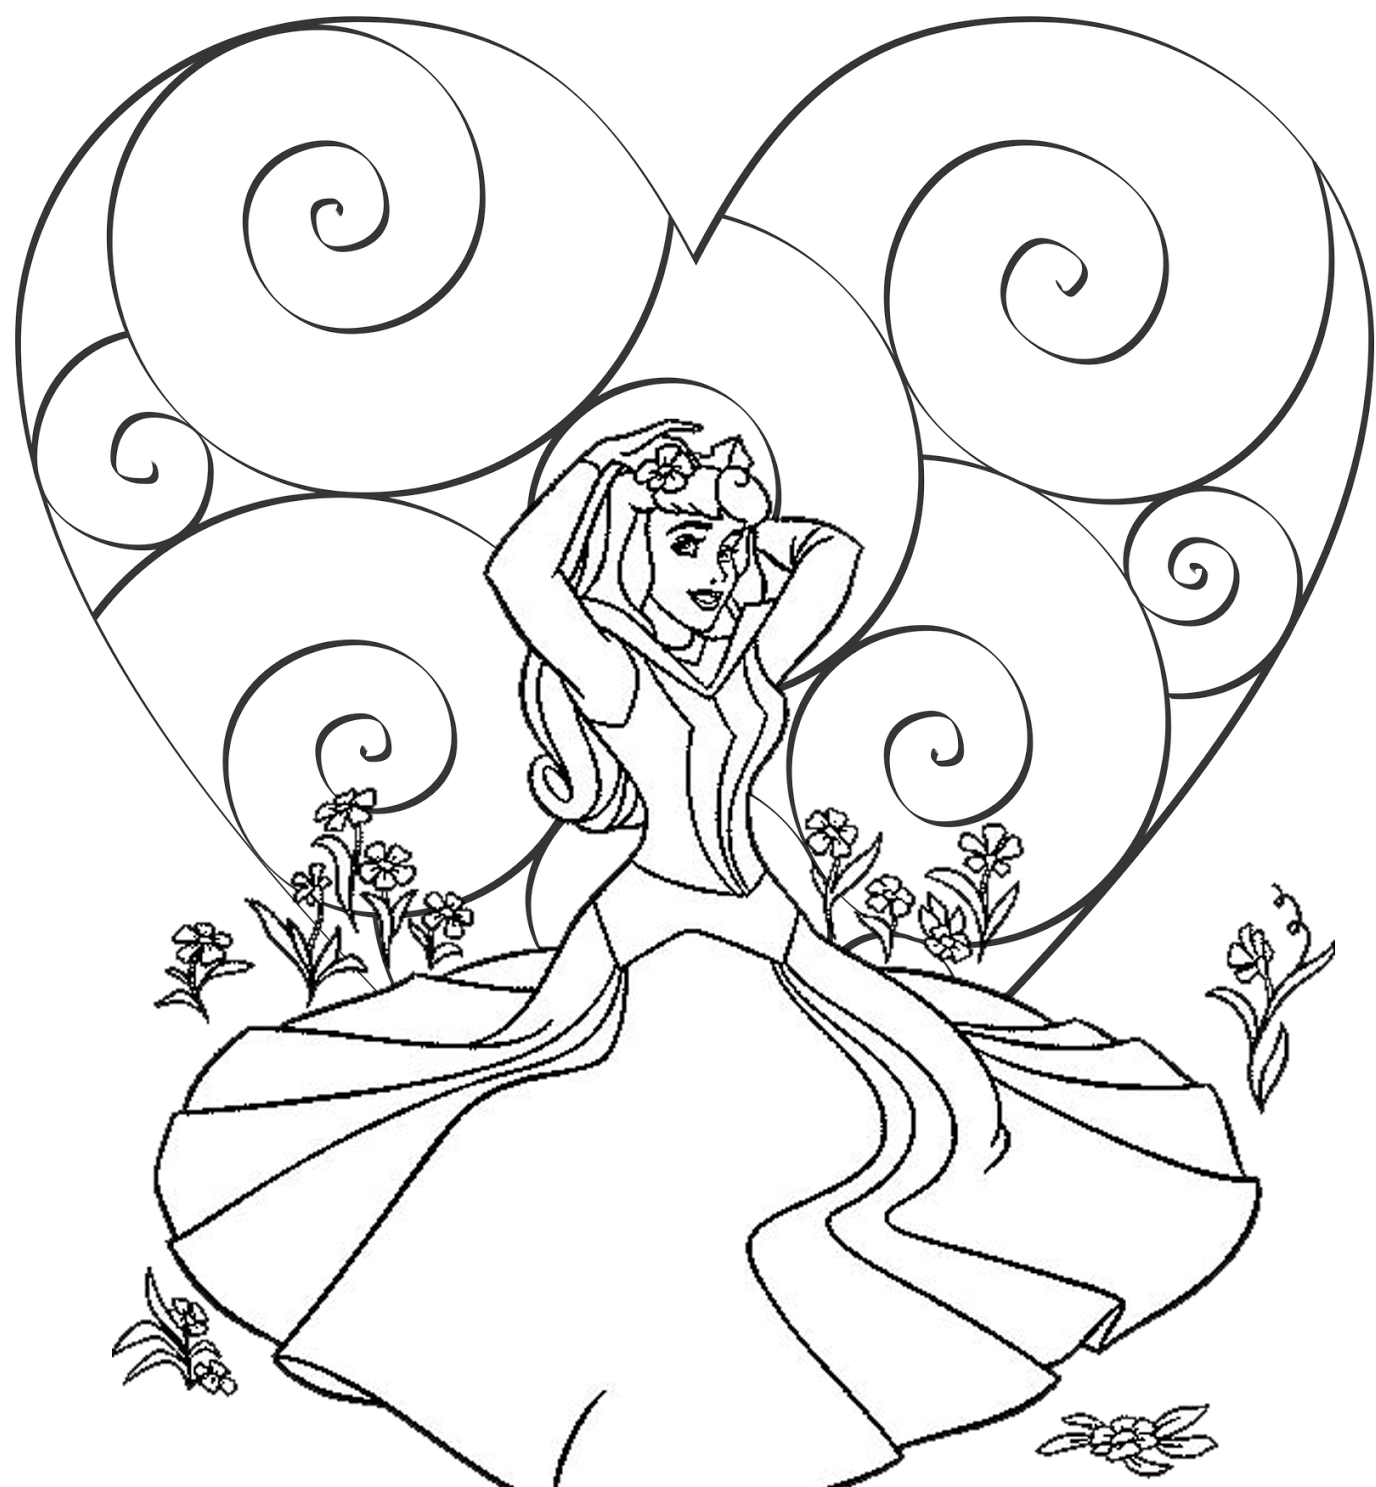 disney coloring worksheets childrens disney coloring pages download and print for free worksheets disney coloring